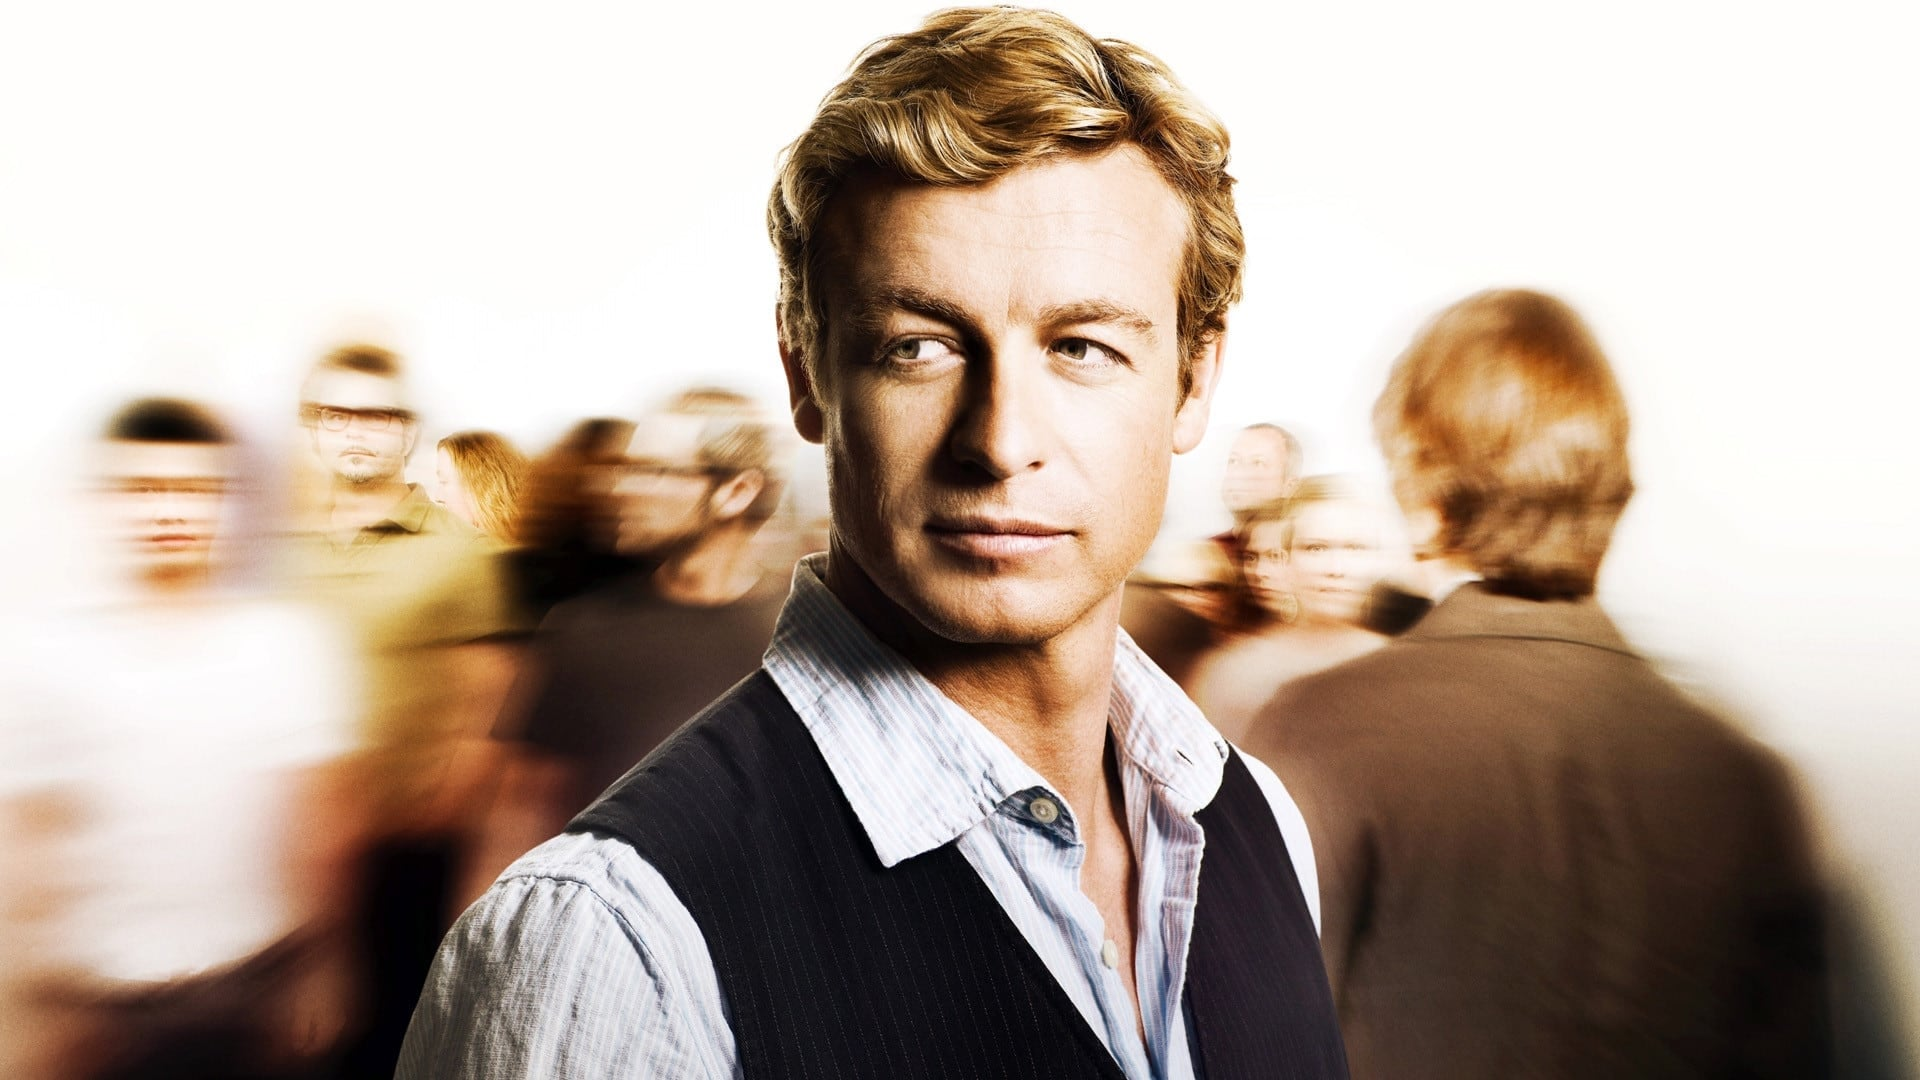 CBS renews 'The Mentalist', cancels 'The Crazy Ones', 'Friends with Better Lives', 'Bad Teacher', 'Intelligence(2014)' and 'Hostages'